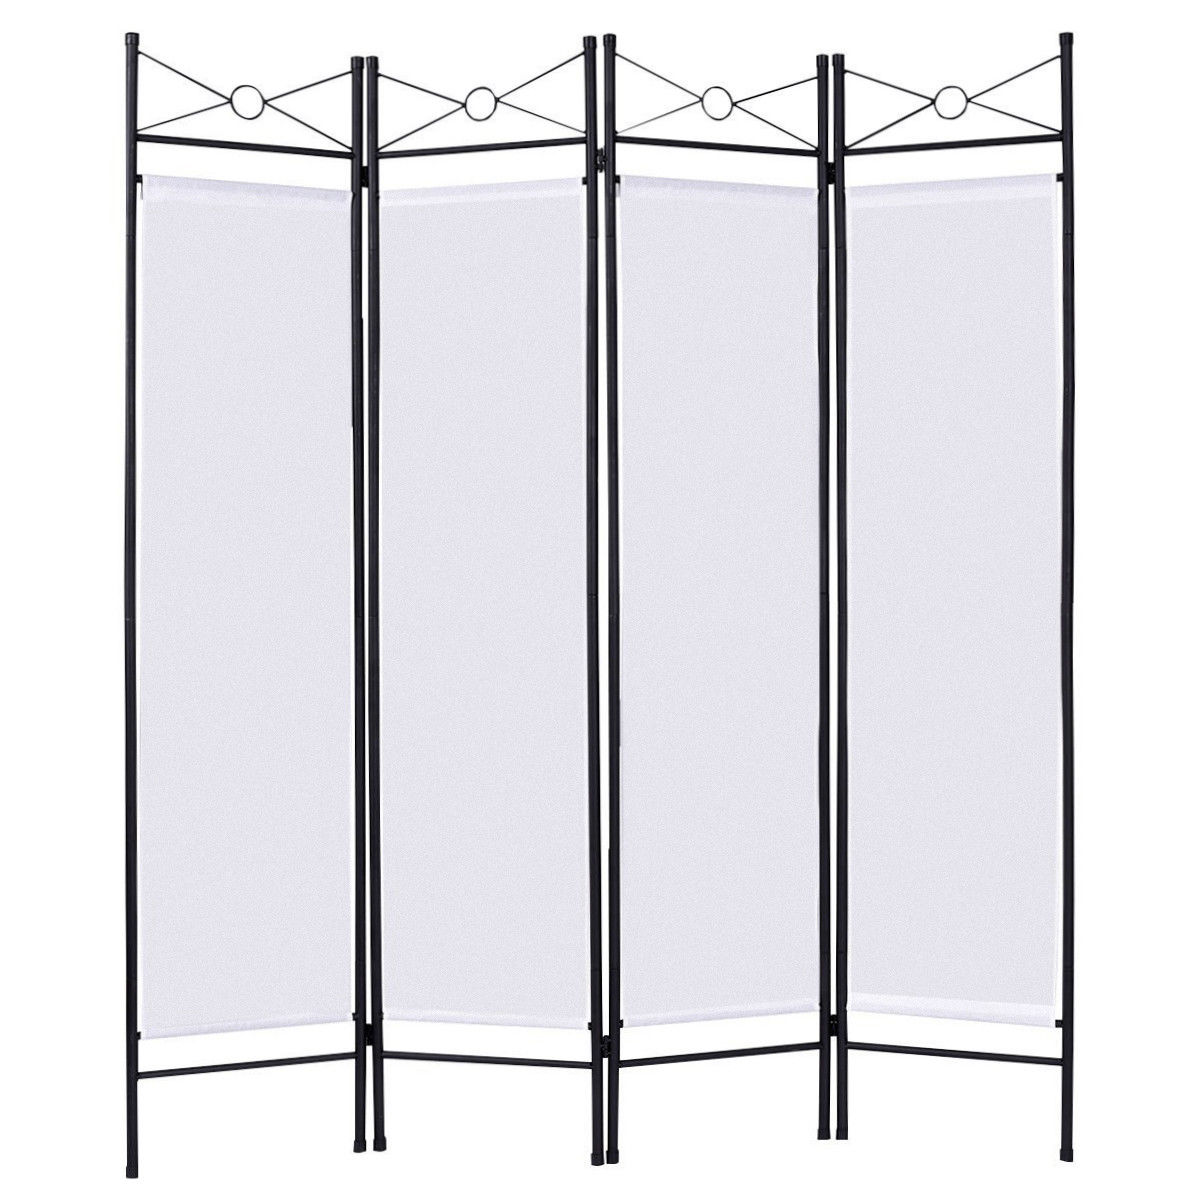 Costway White 4 Panel Room Divider Privacy Screen Home Office Fabric